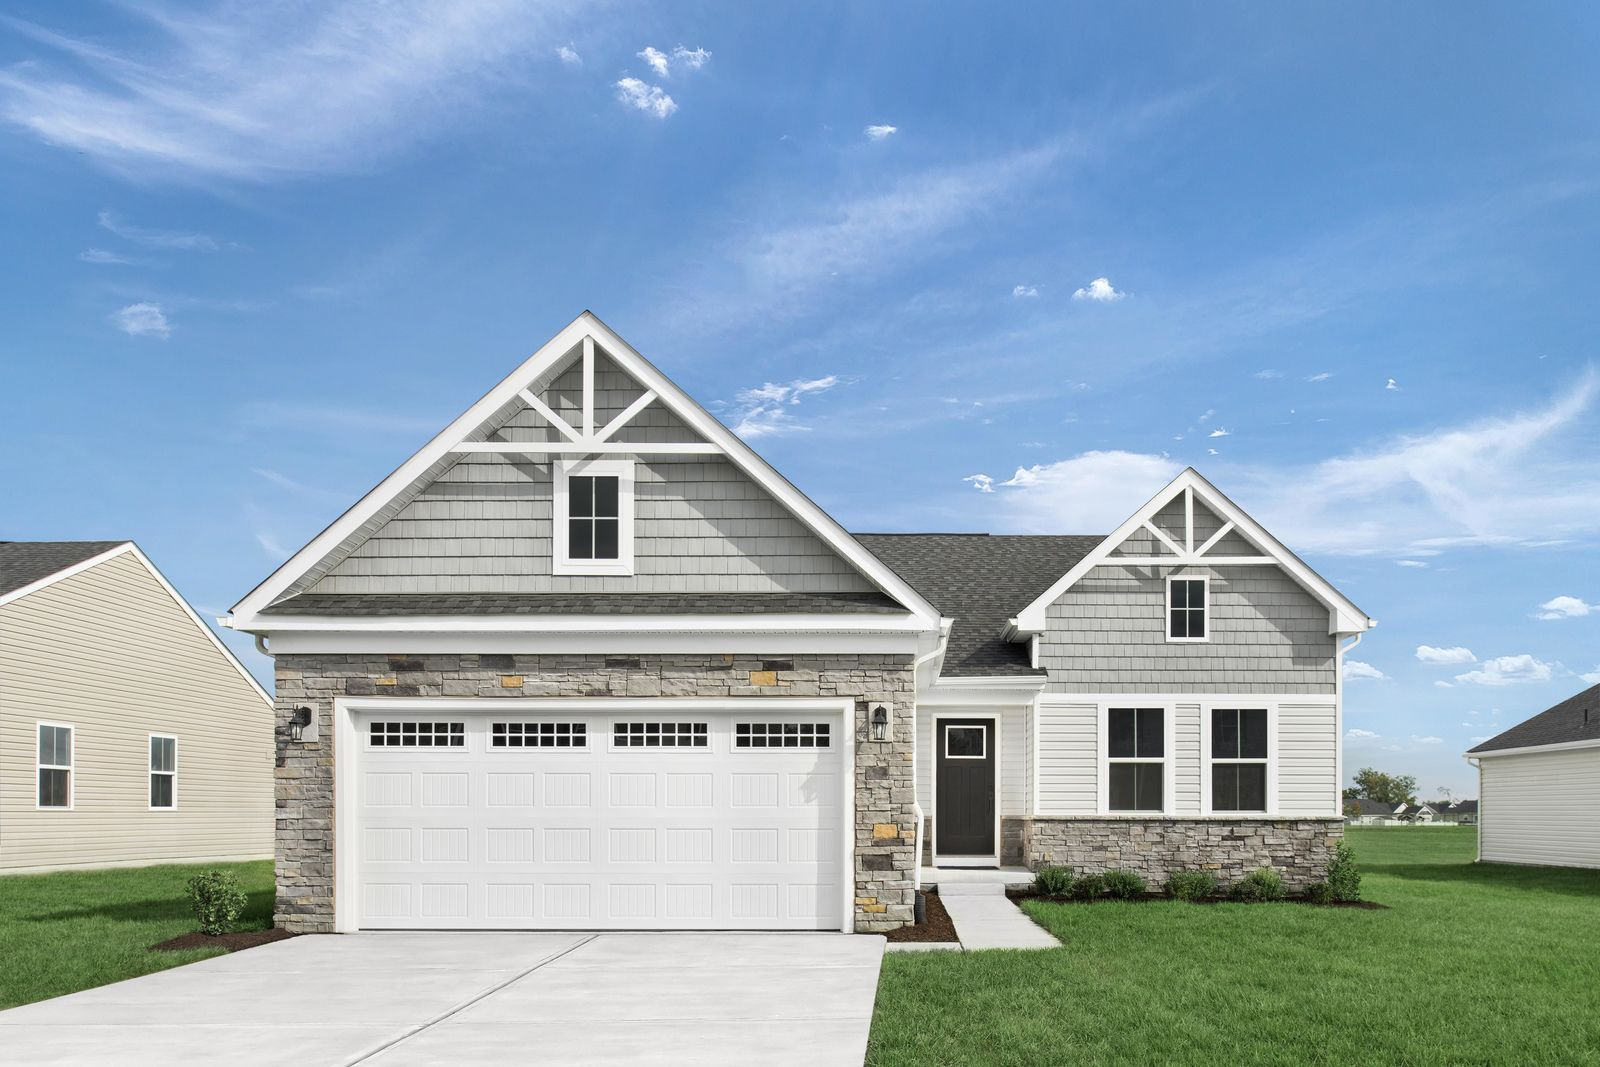 WELCOME TO ARCADIA NORTH RANCH HOMES:Coming July 2021! Affordable ranch homes with a 2-car garage and rear yard. Minutes to I-81, Rt. 340, & 4 miles to MARC Train Station. Priced from upper $200s.Join the List Today!